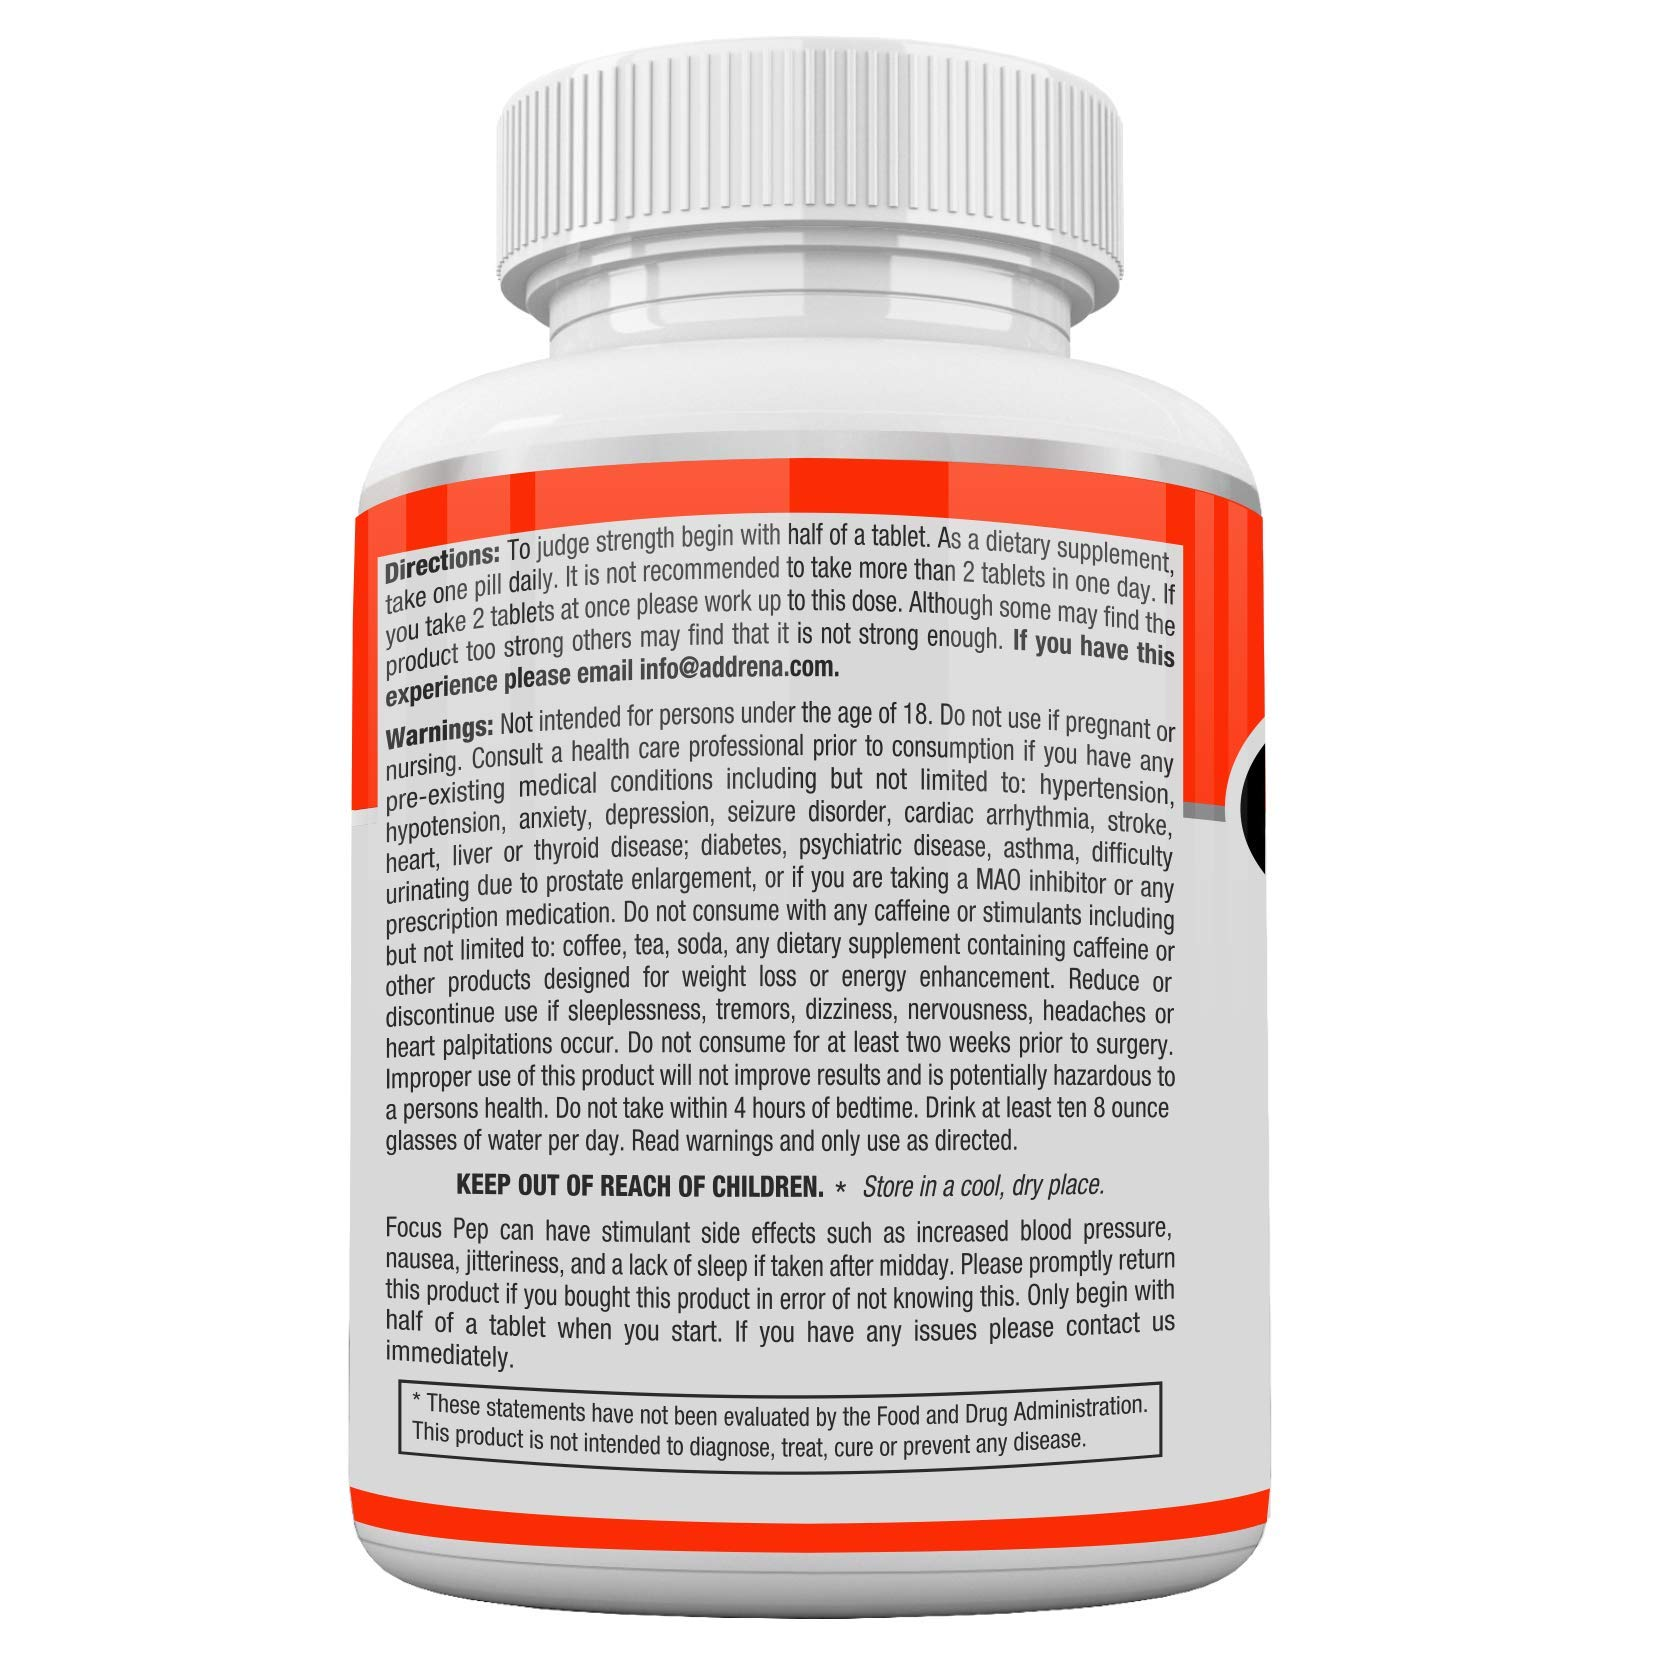 Addrena Focus Pep 2 Pack- Over The Counter Stimulants to Speed Up Naturally: Study Alternative and Best Energy Supplements for Nootropic Brain Boosting, 1207 mg, 60 Pills by Addrena